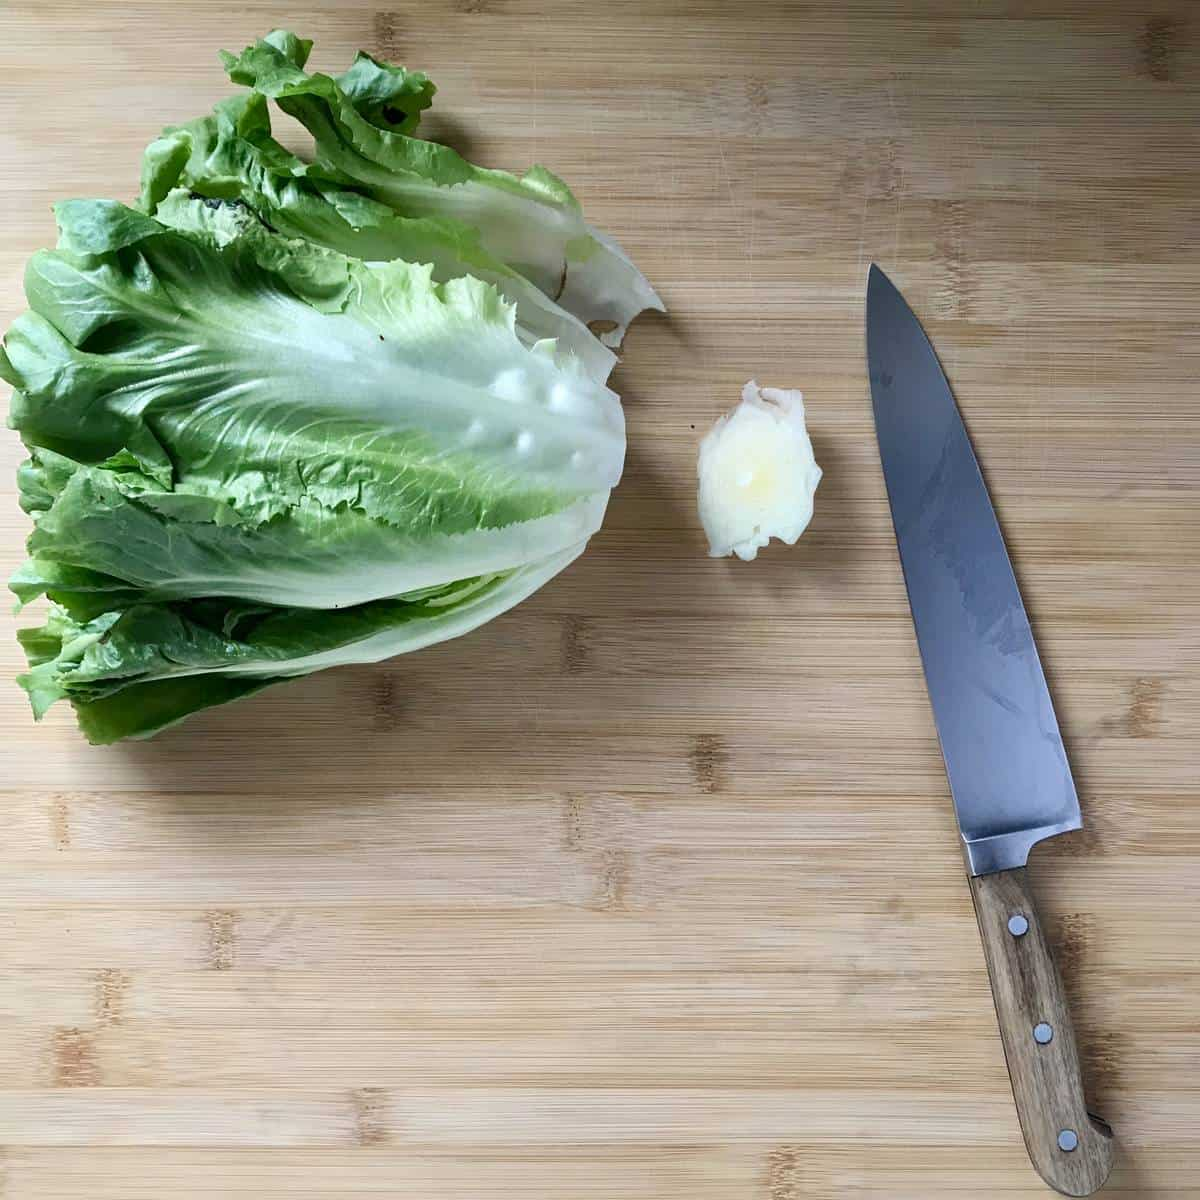 An escarole picture with the end trimmed off.